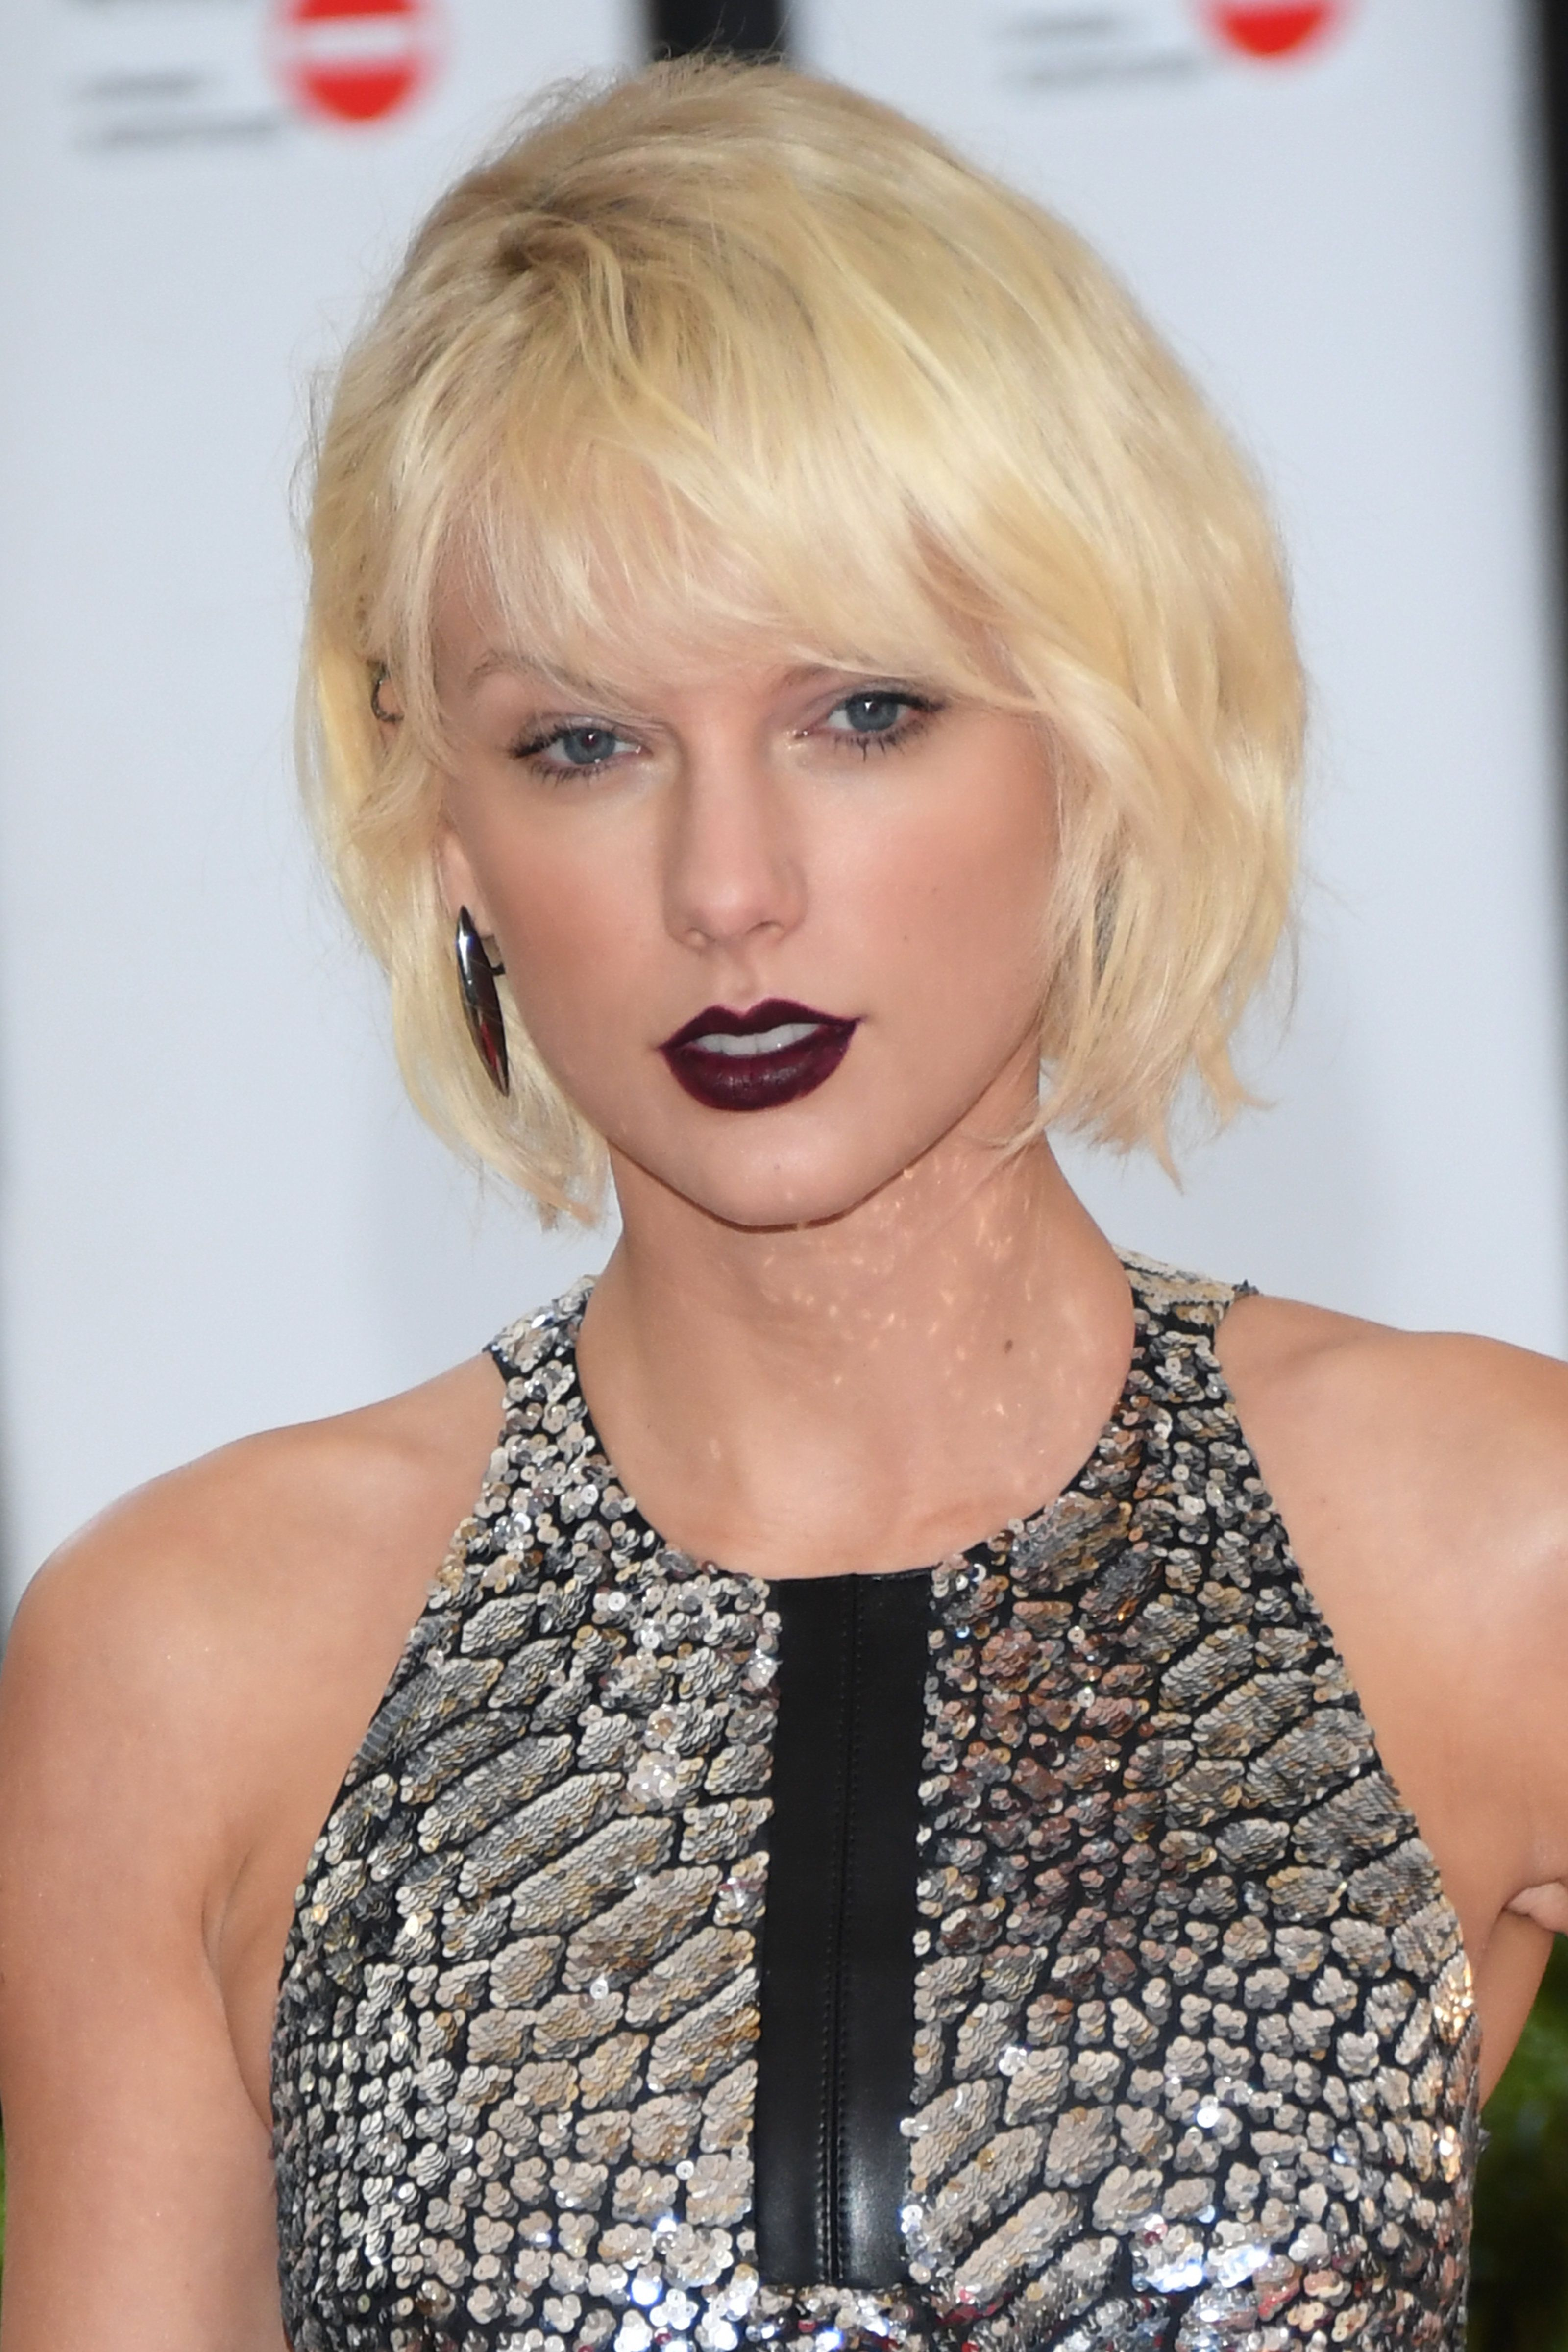 Taylor Swift Images 2016